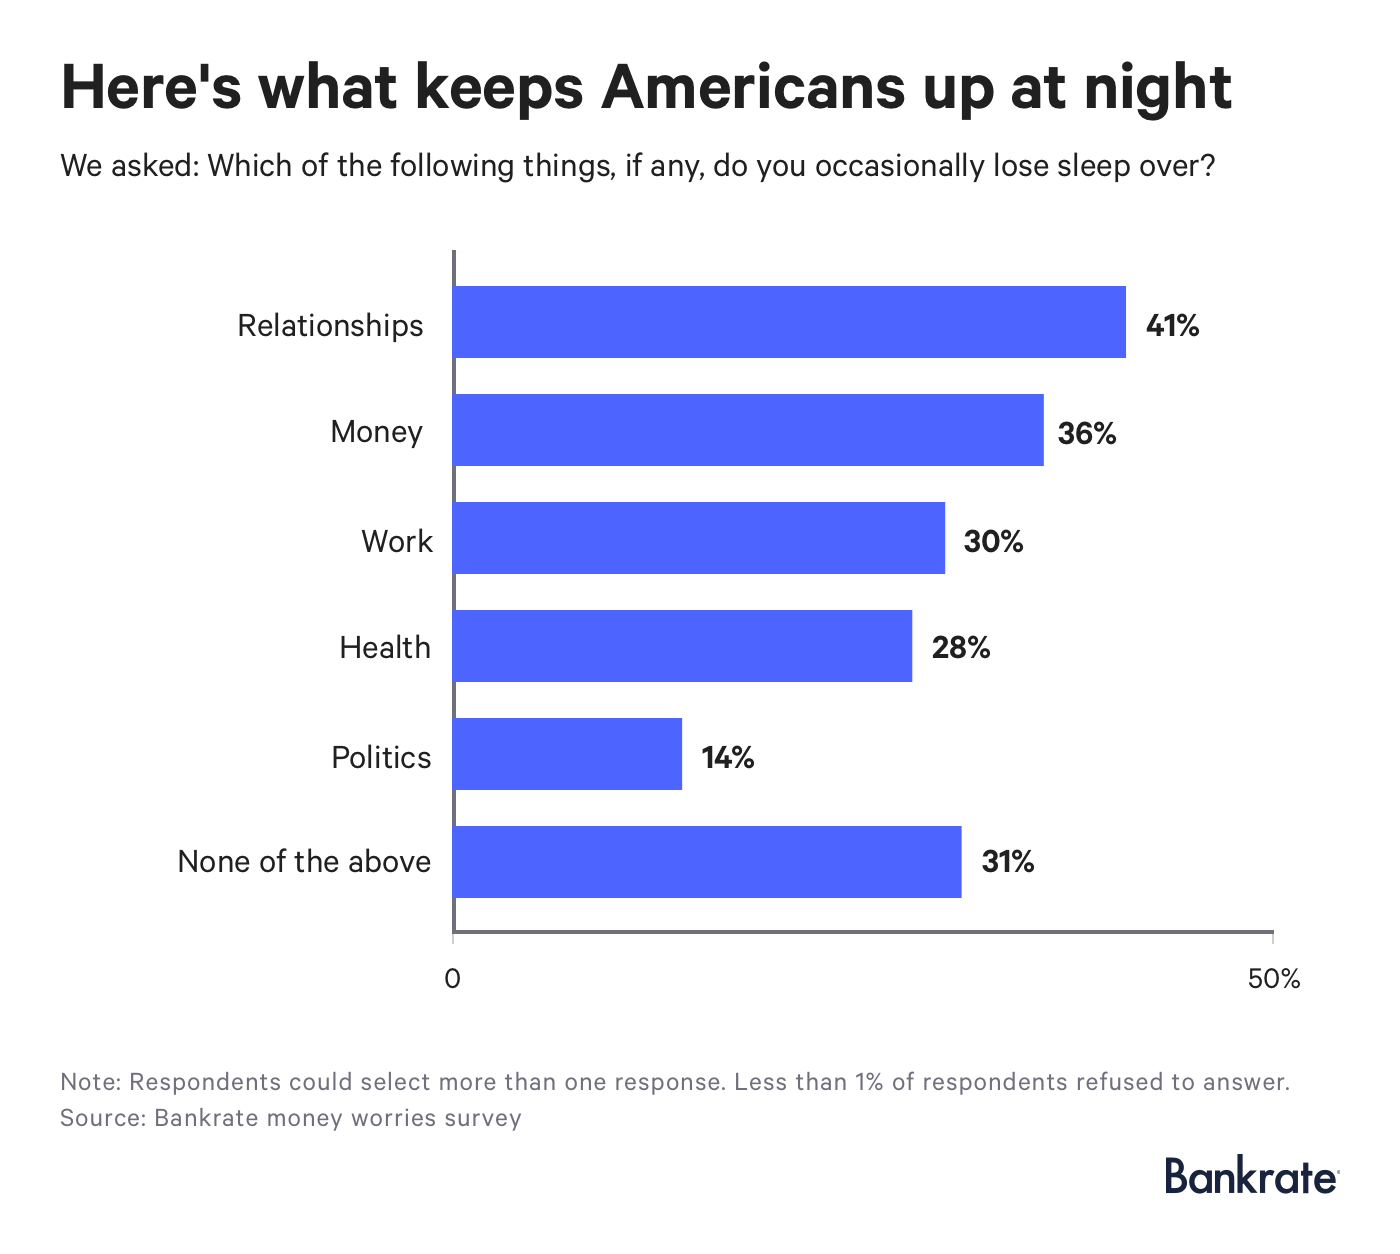 Relationships and money are the top things Americans occasionally lose sleep over